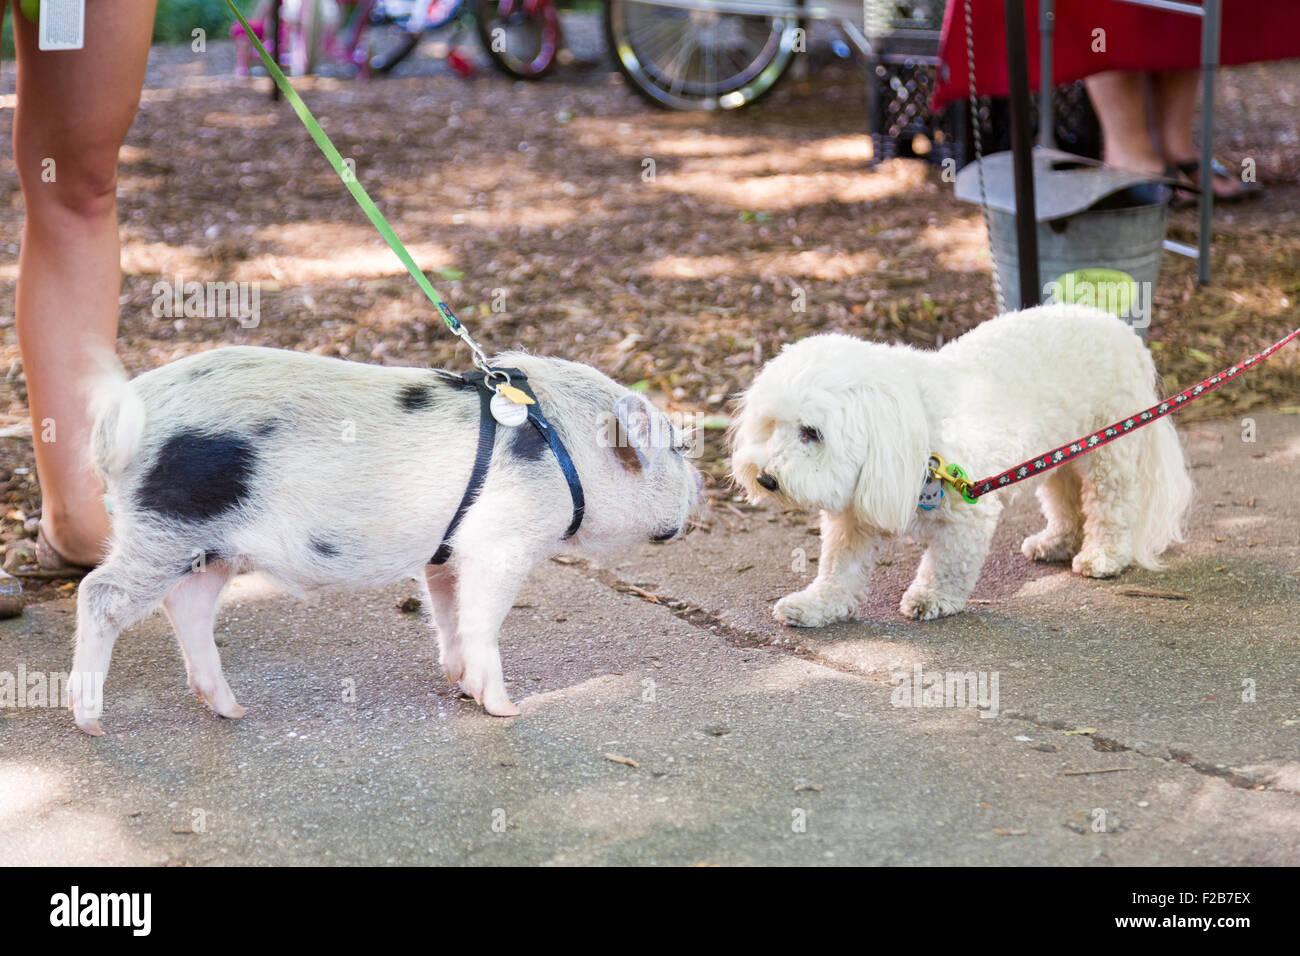 A Juliana teacup pet pig greets a dog at a farmers market in